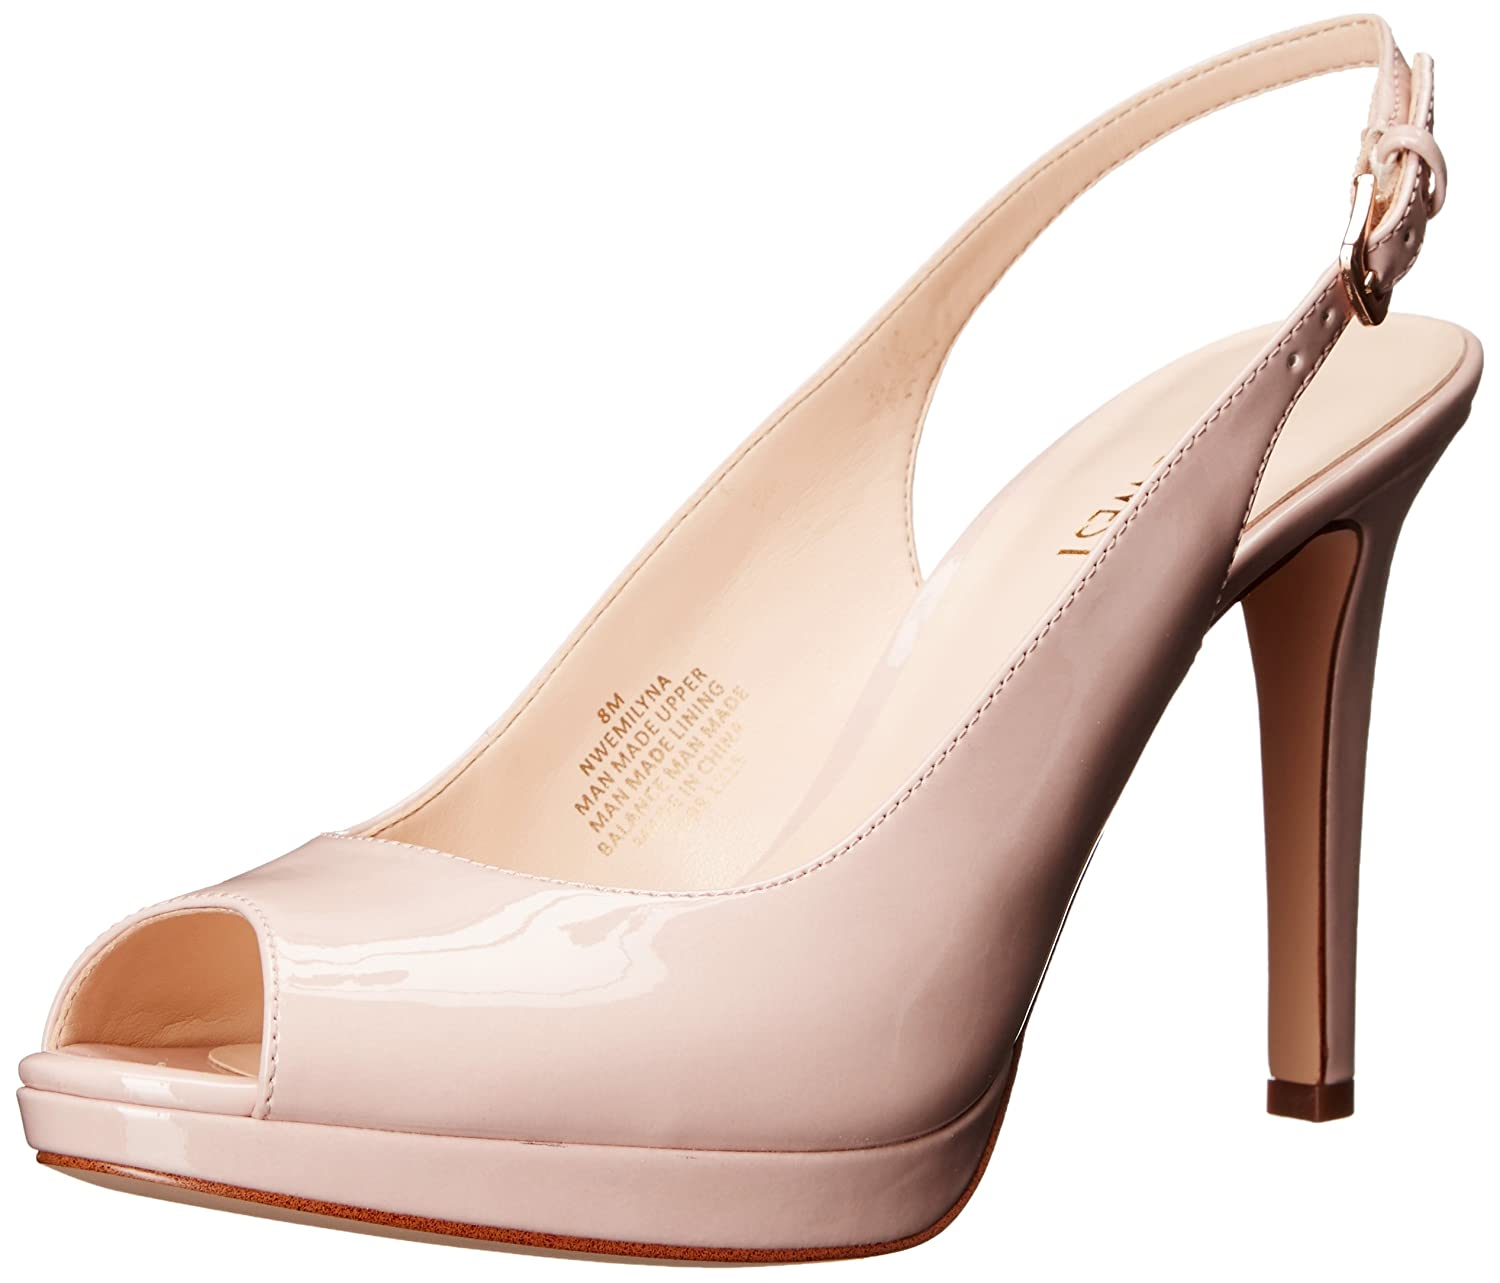 e8bc9a46bf4 Nine West Women s Emilyna Synthetic Dress Pump delicate - hvhuissen.nl